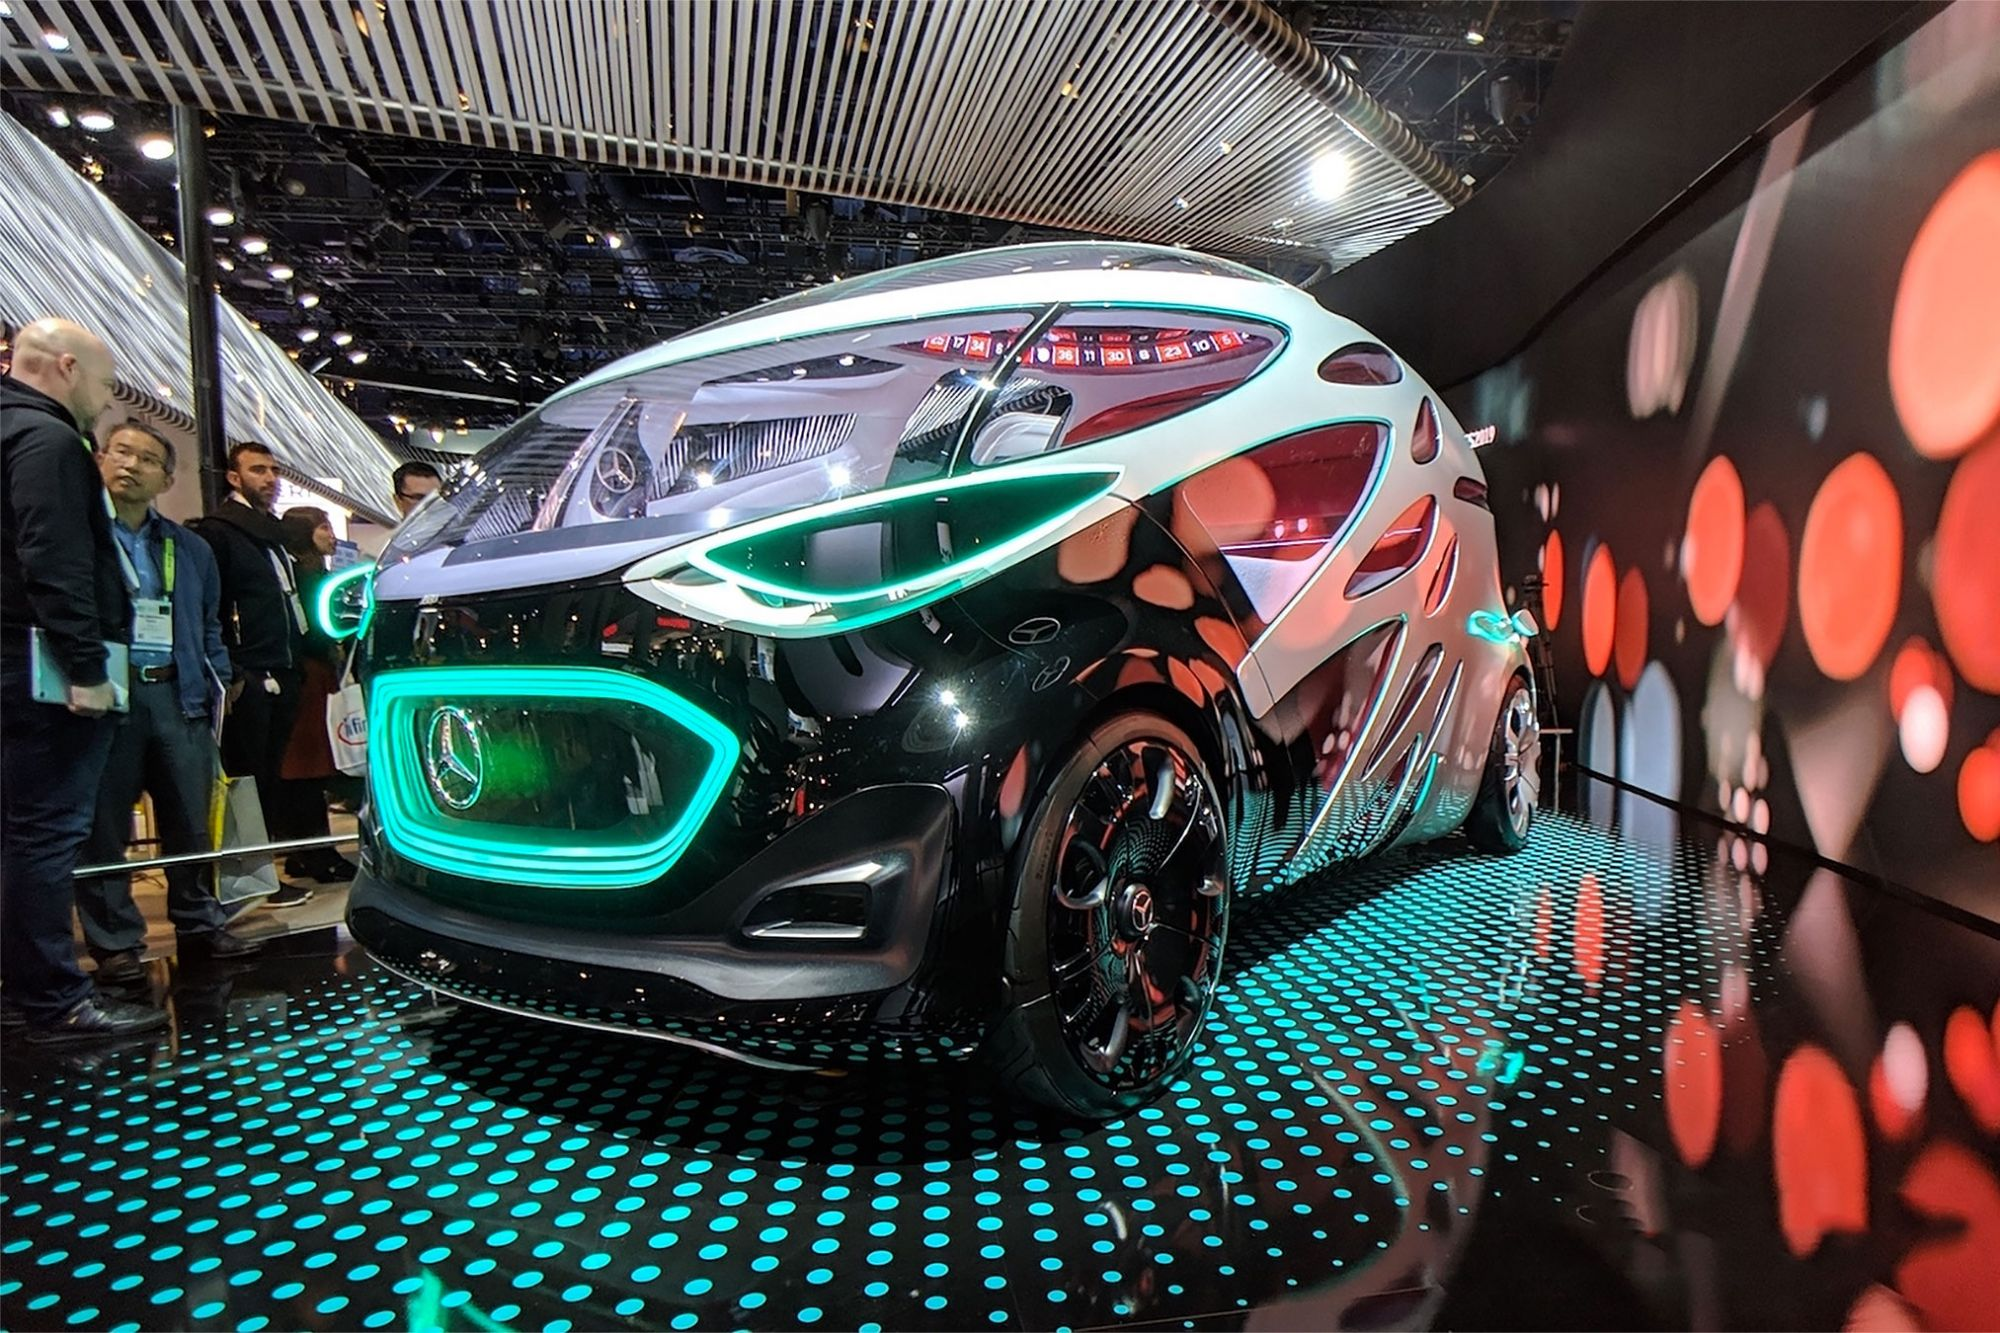 QnA VBage The 15 Craziest Cars and Futuristic Vehicles of CES 2019